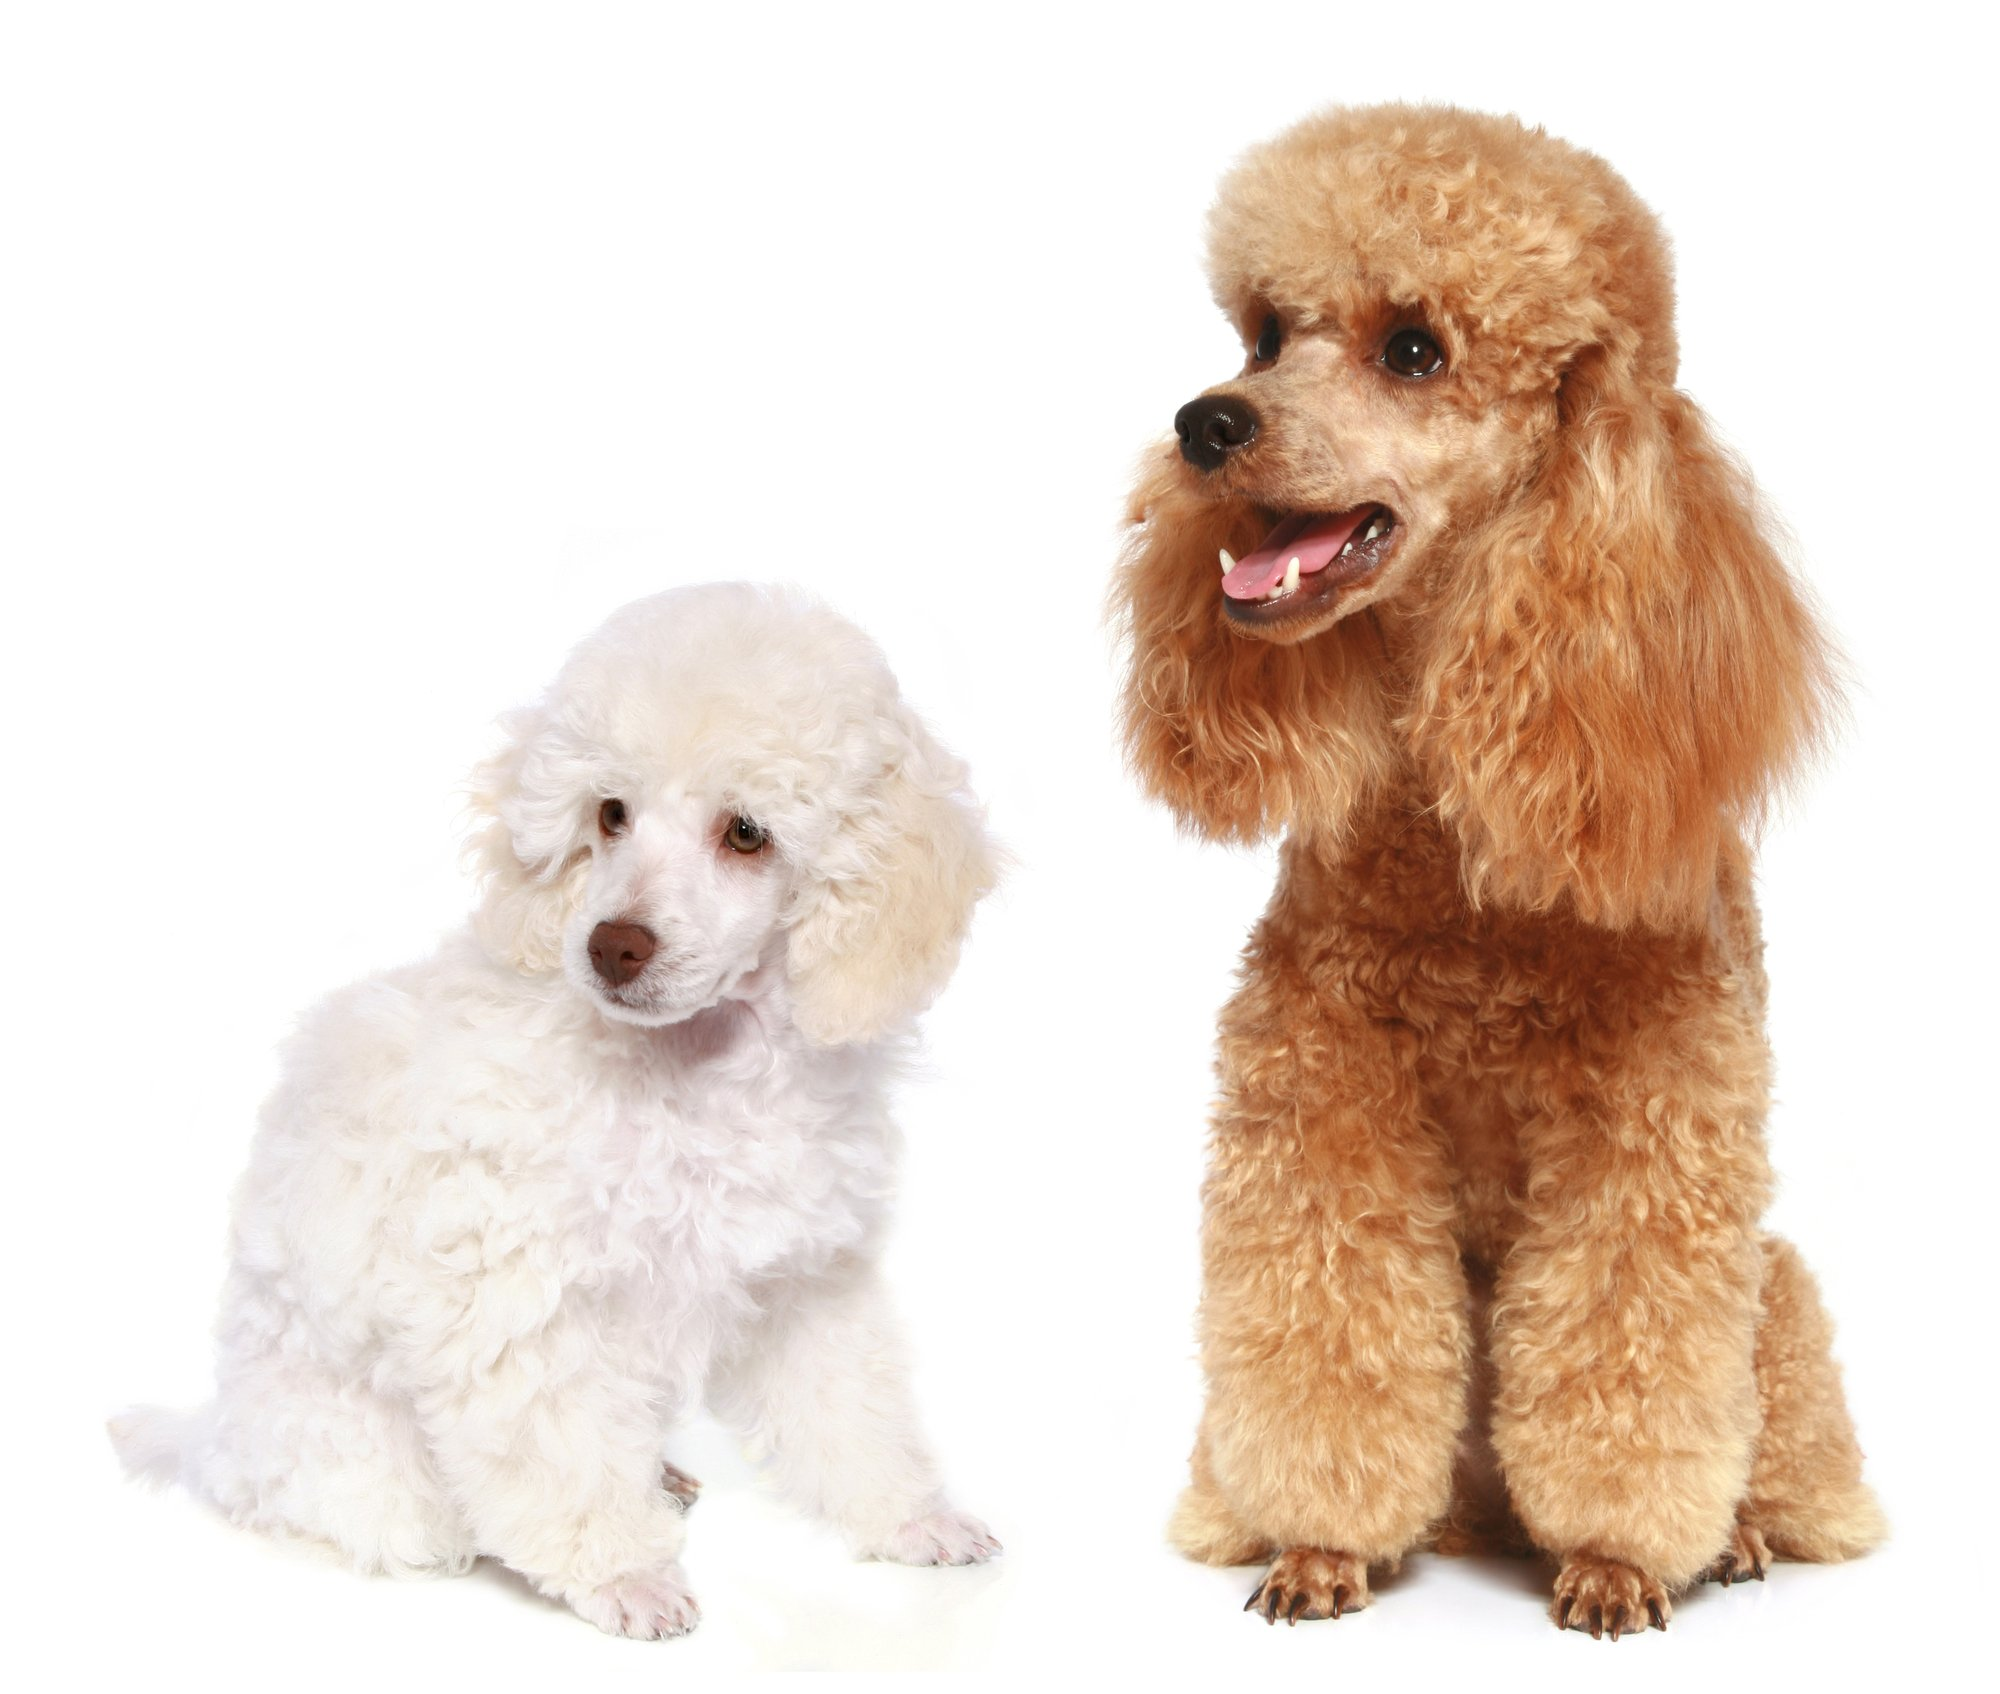 Small poodle with Toy Poodle in front of a white background